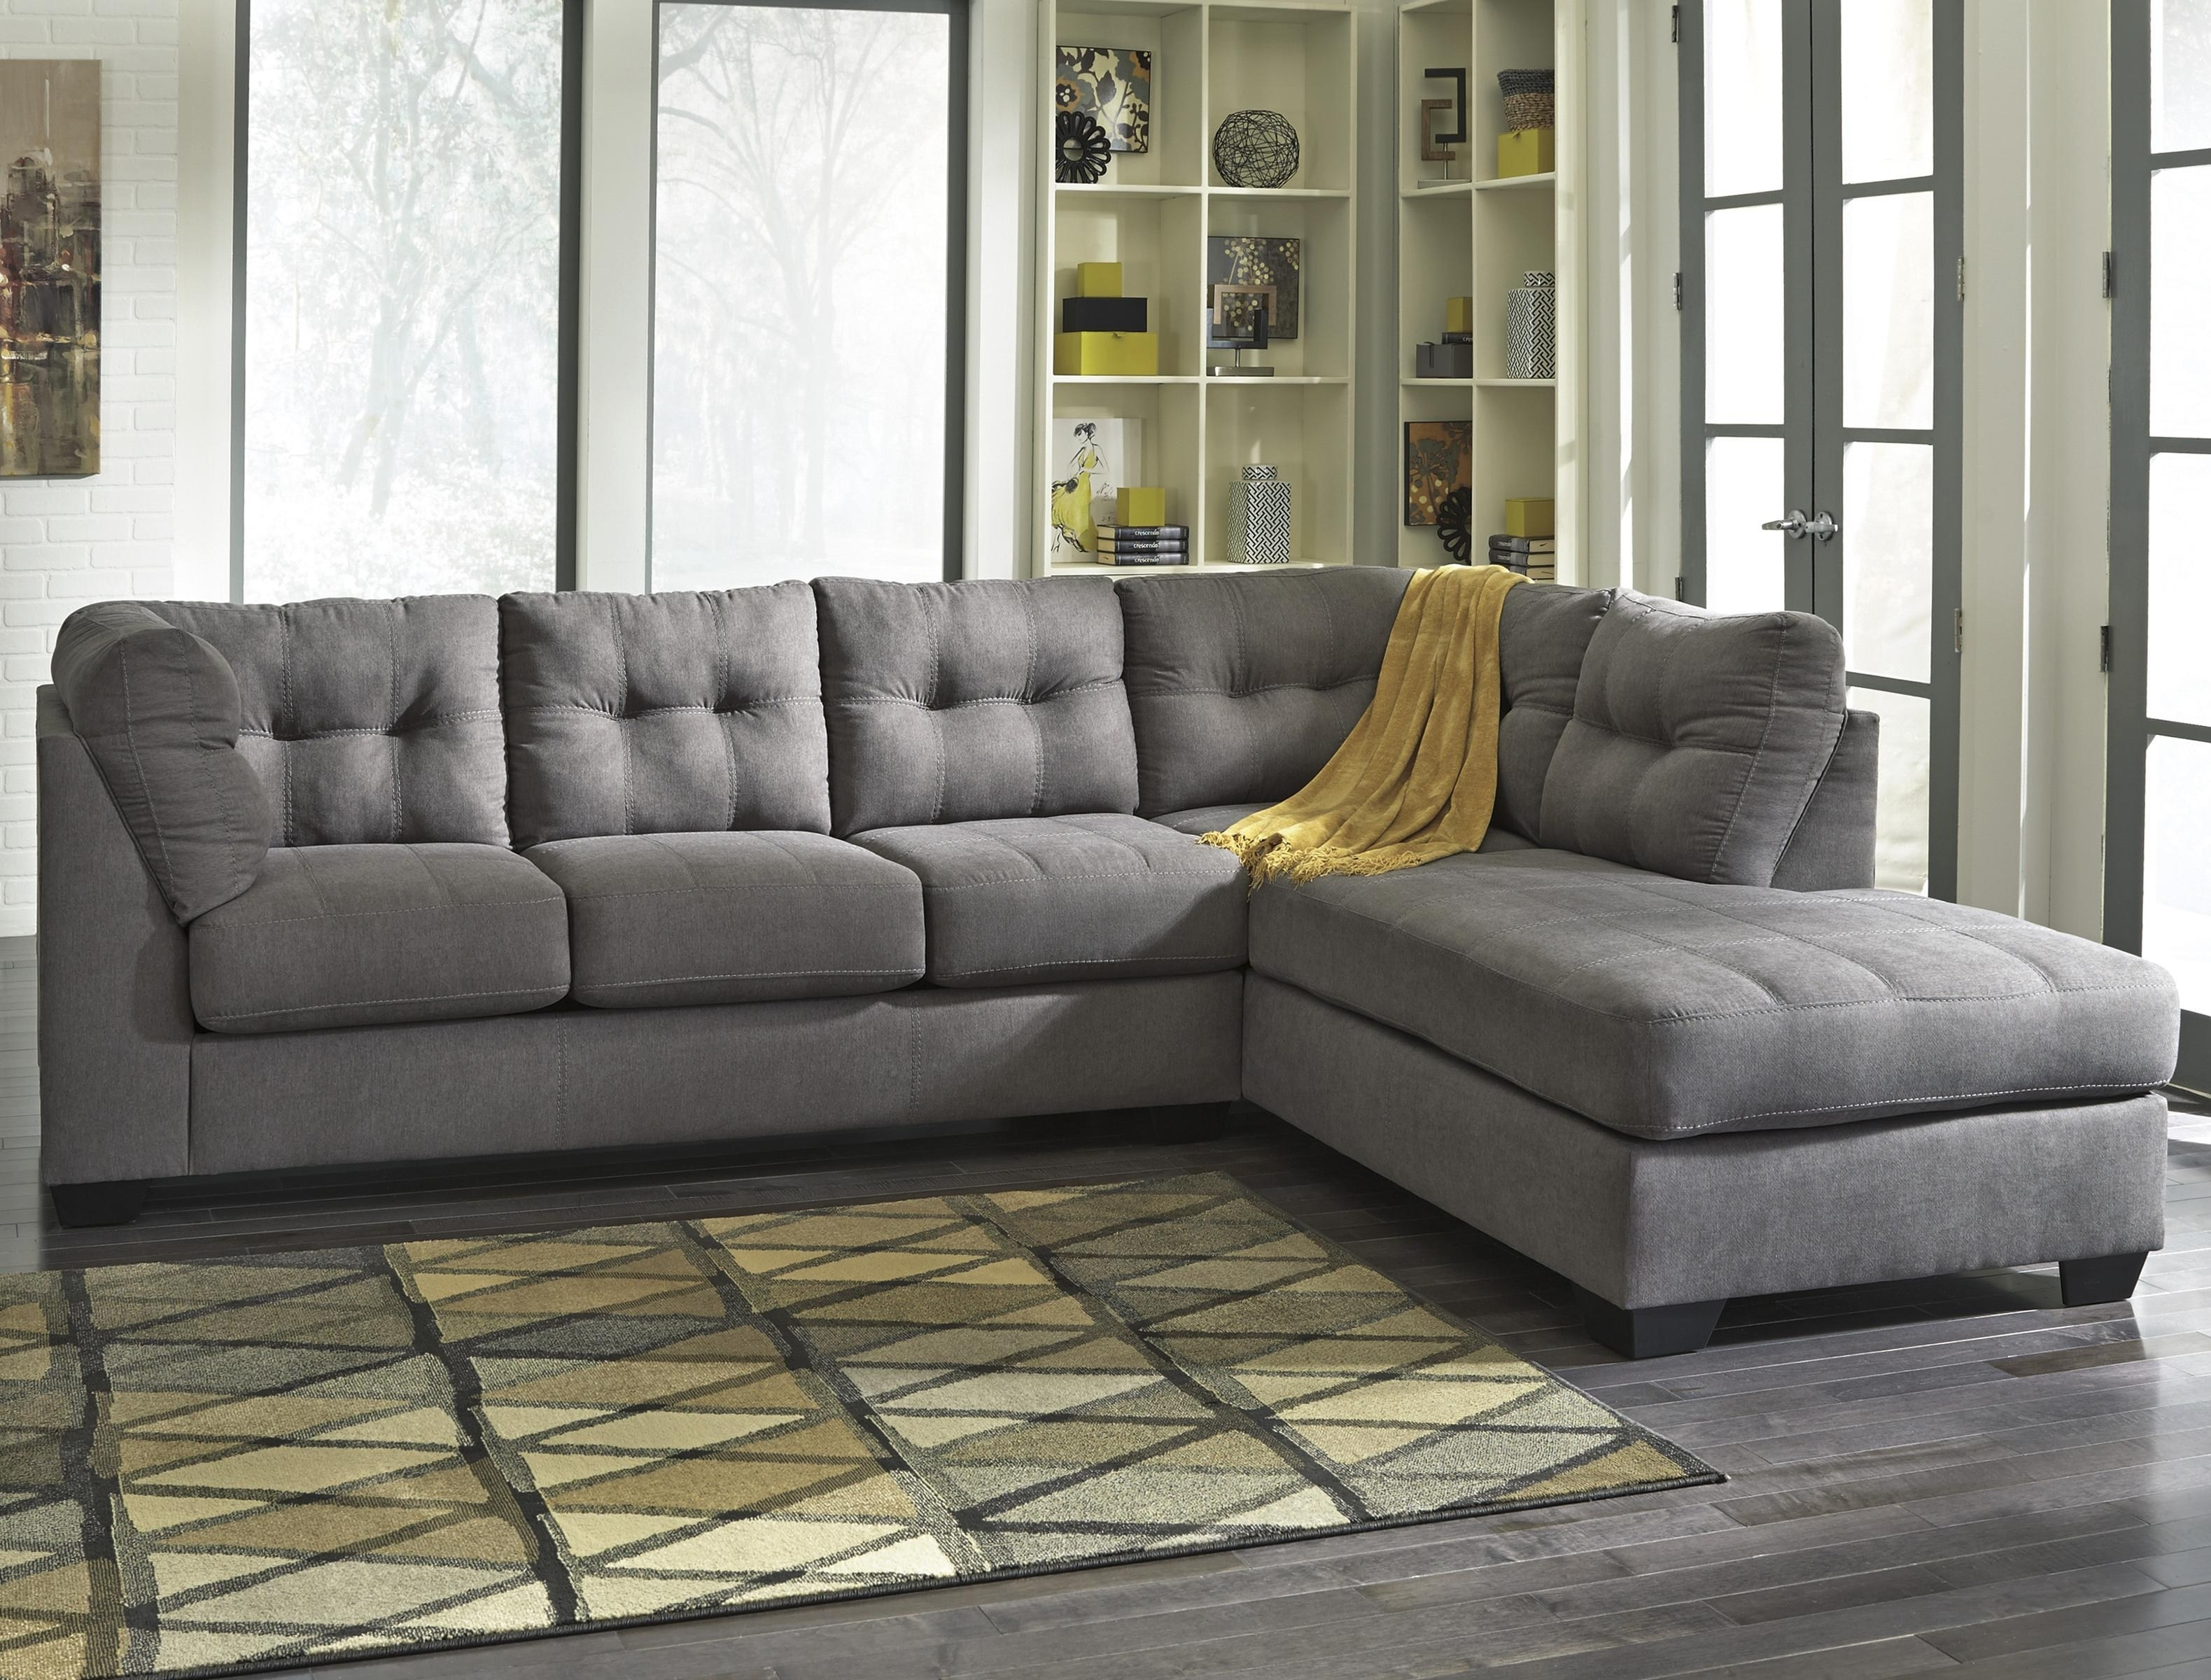 What To Know Before Buying A 3 Piece Sectional Sofa – Elites Home Decor Within Kerri 2 Piece Sectionals With Laf Chaise (Image 25 of 25)